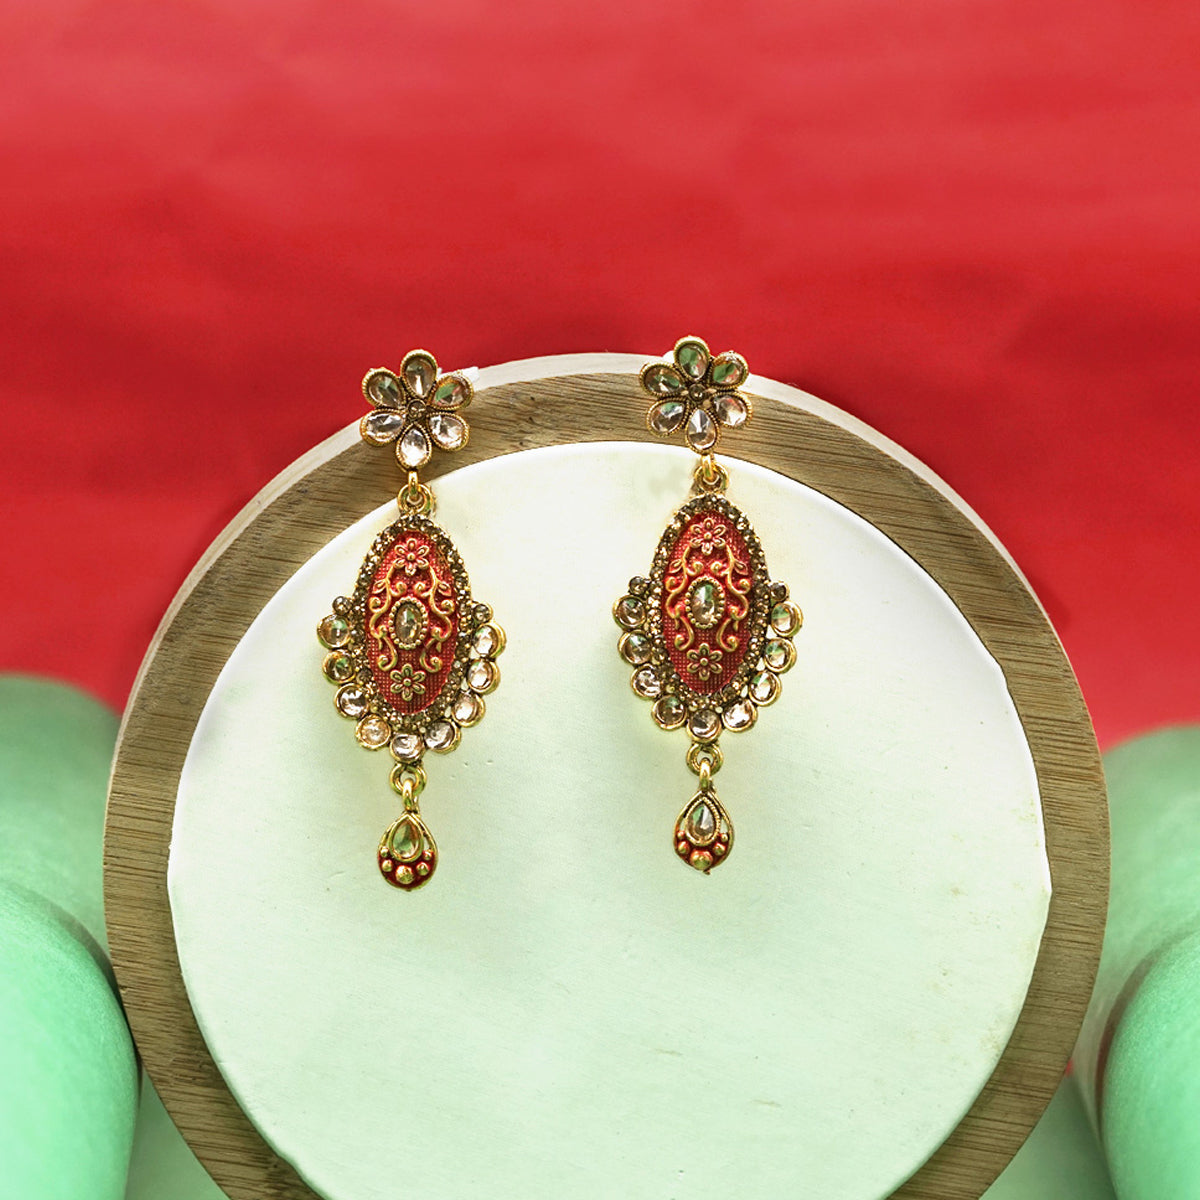 Traditional Oval Shape Earrings - Kiyara